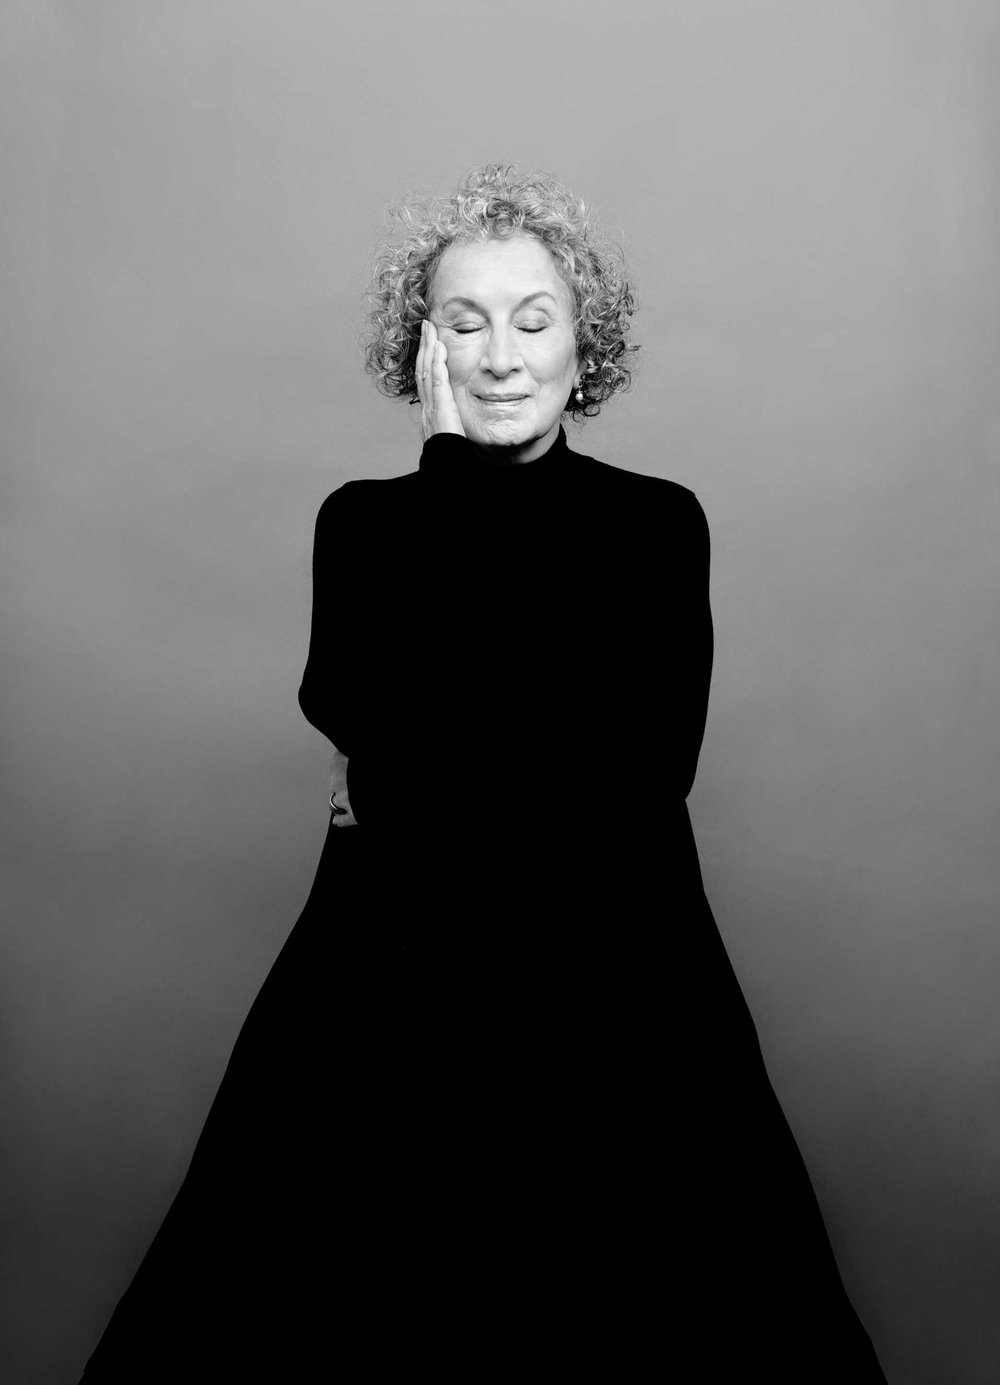 Margaret Atwood - Author of The Handmaid's Tale, amongst others